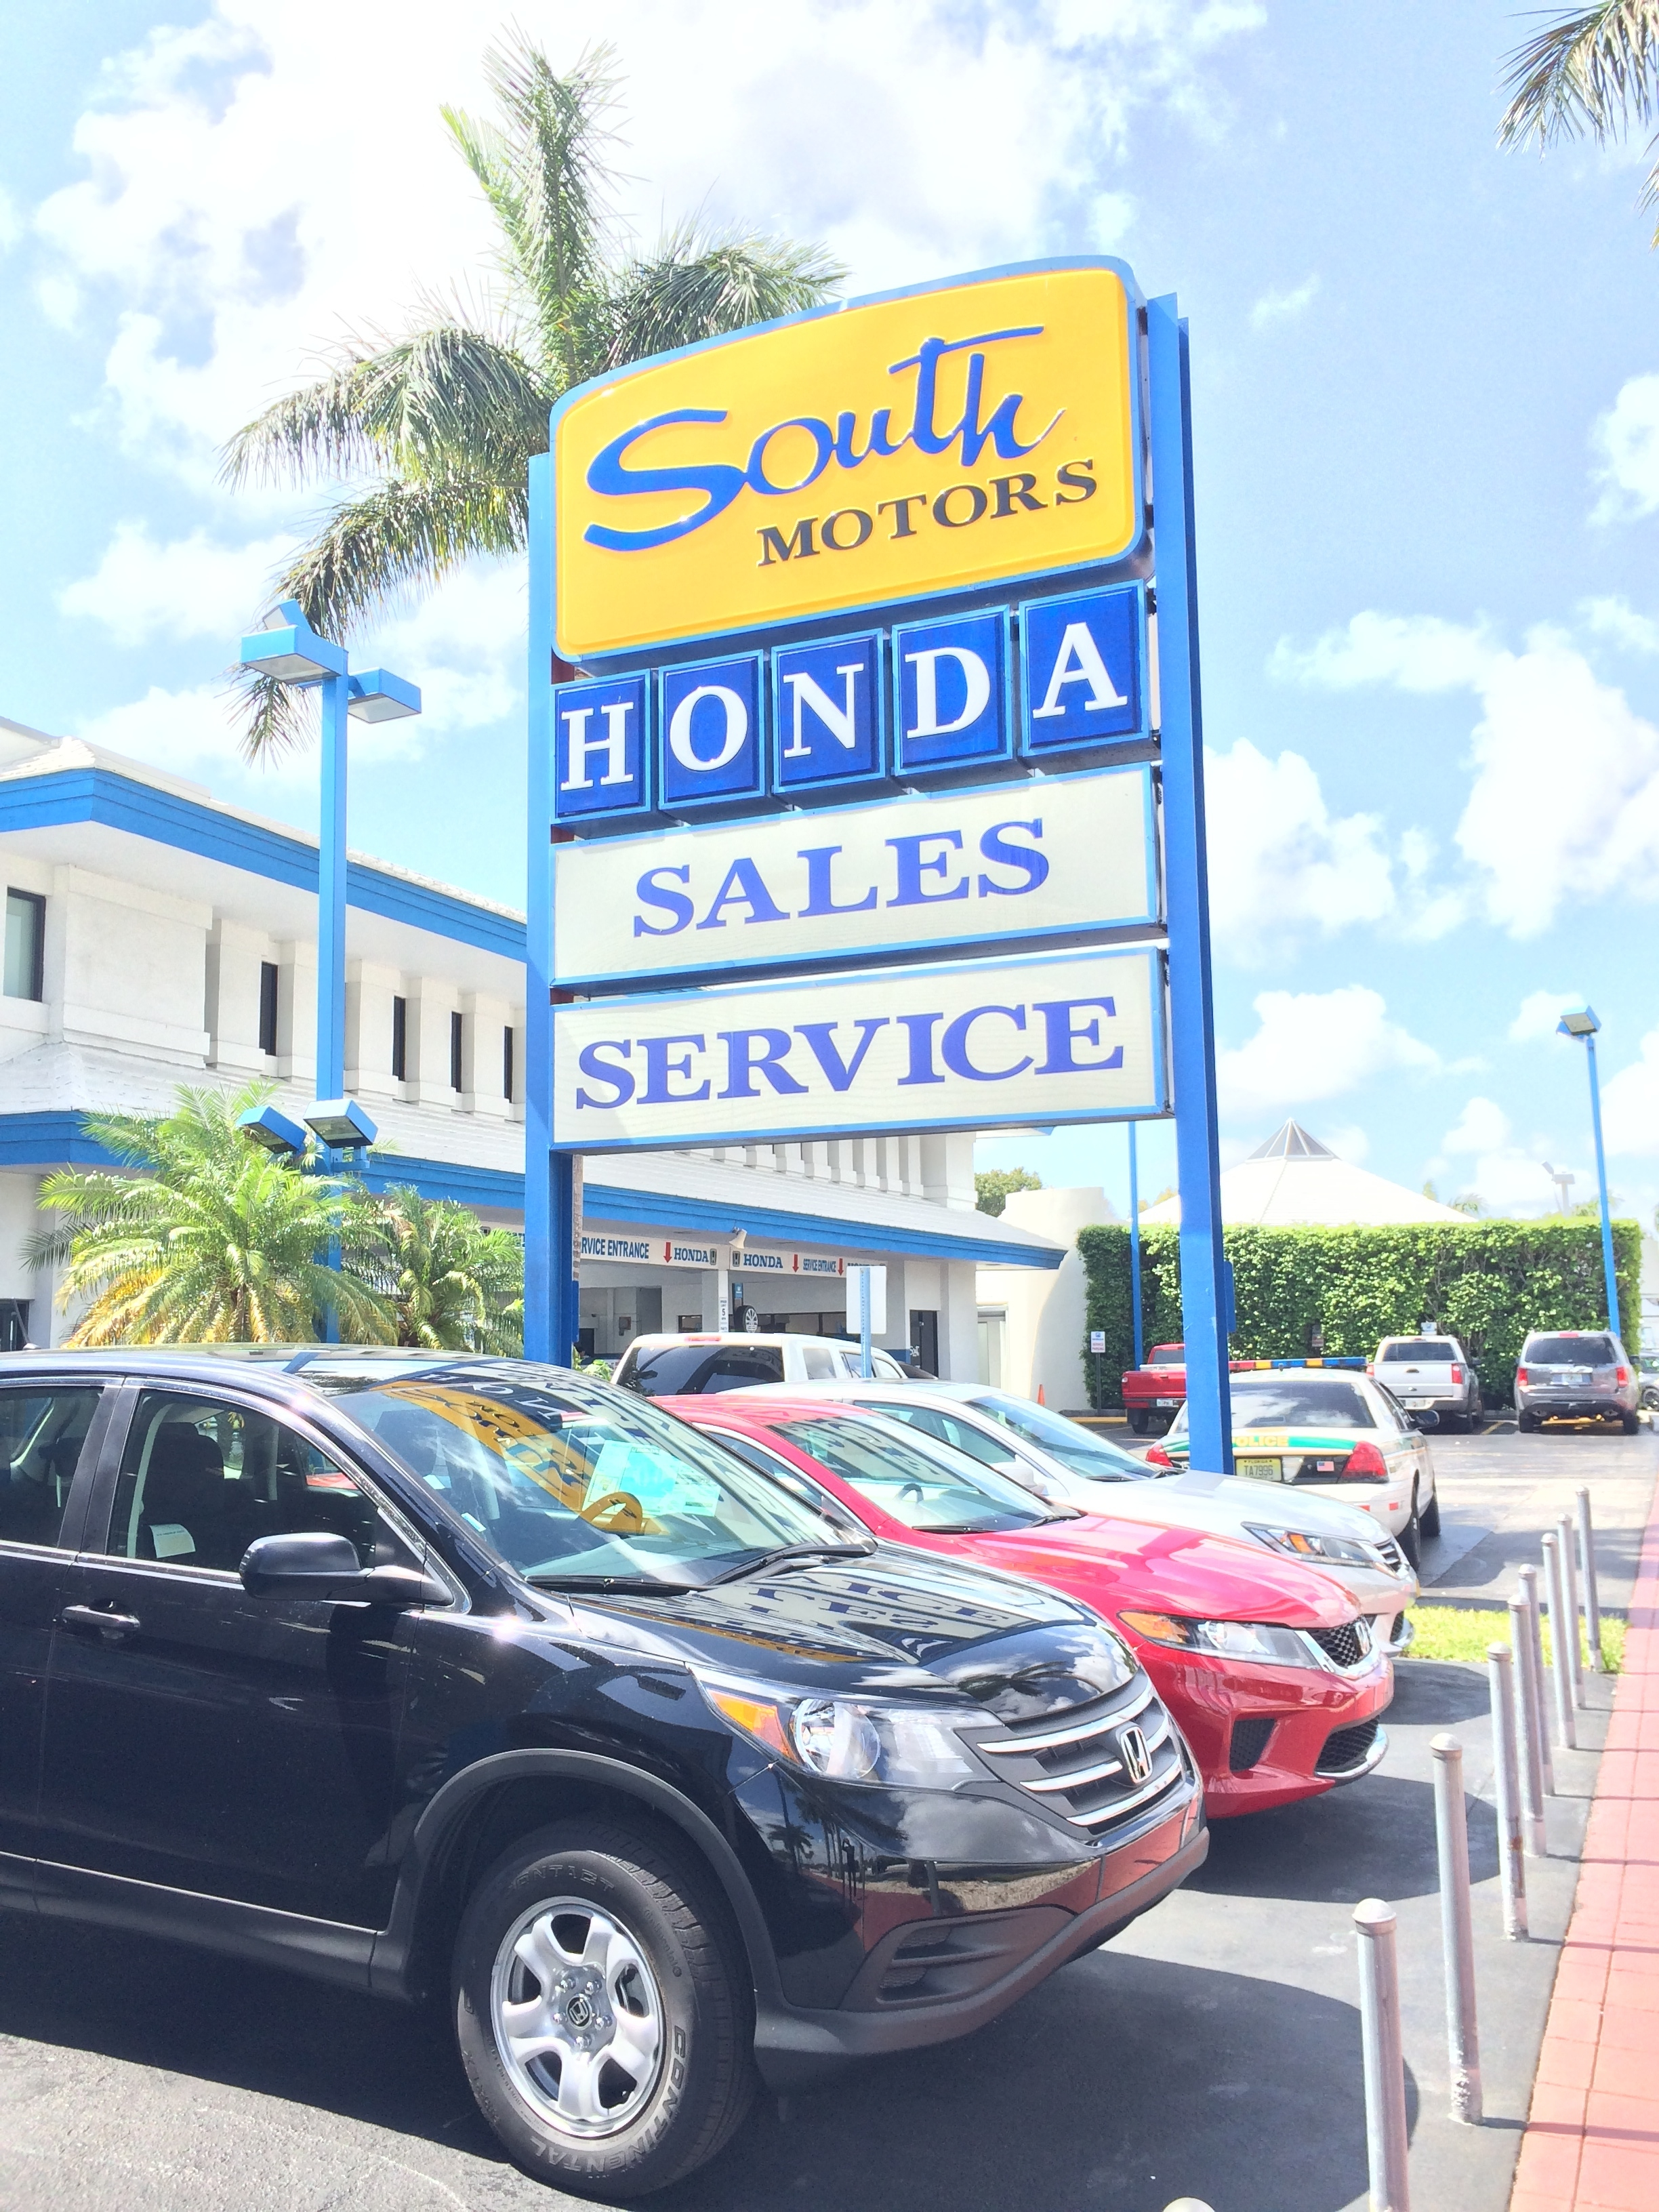 south motors honda miami fl business directory